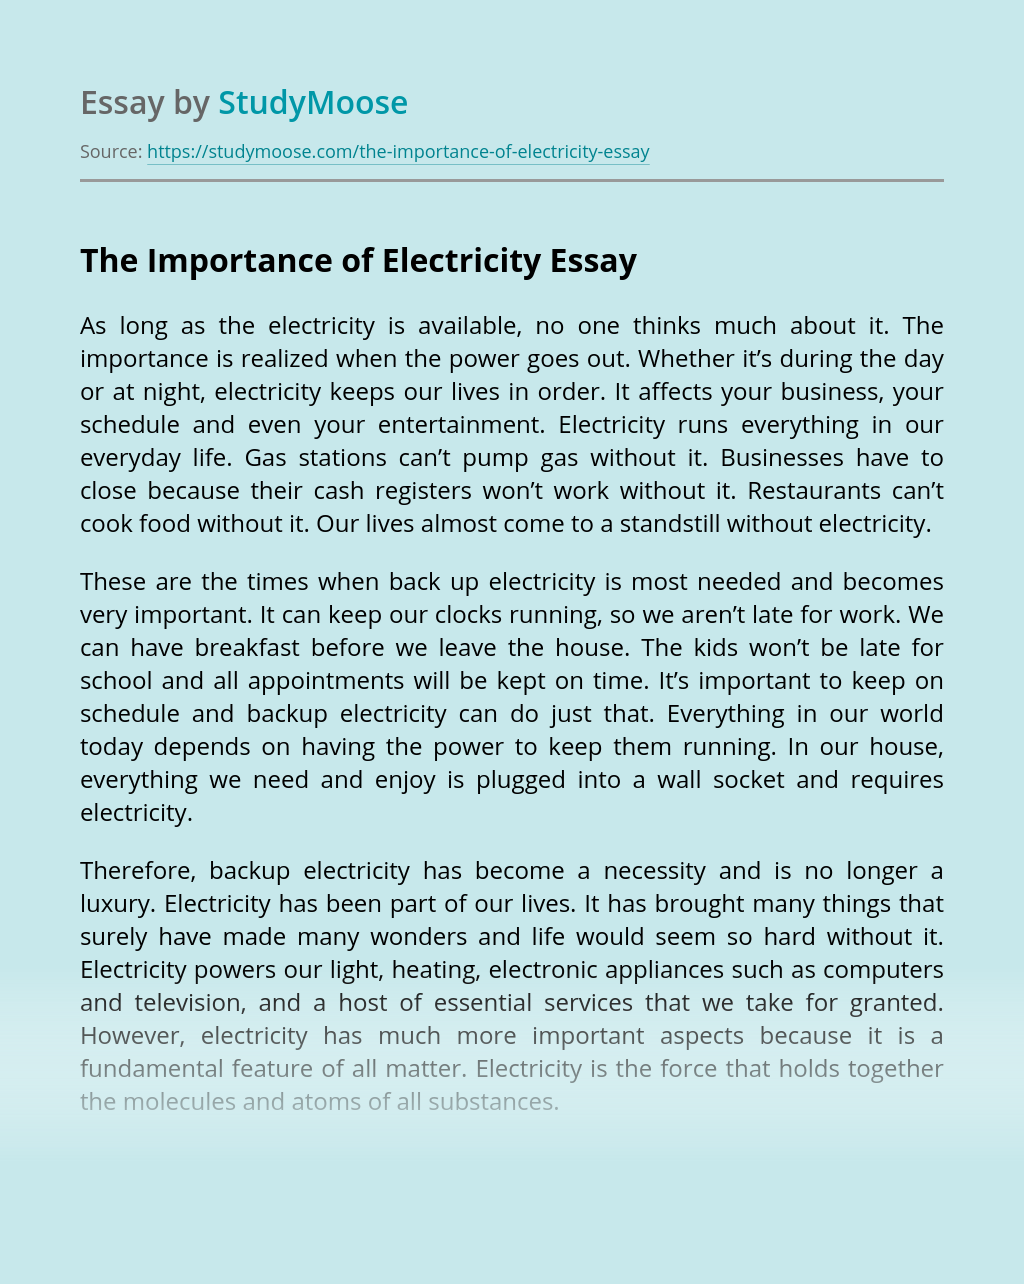 The Importance of Electricity